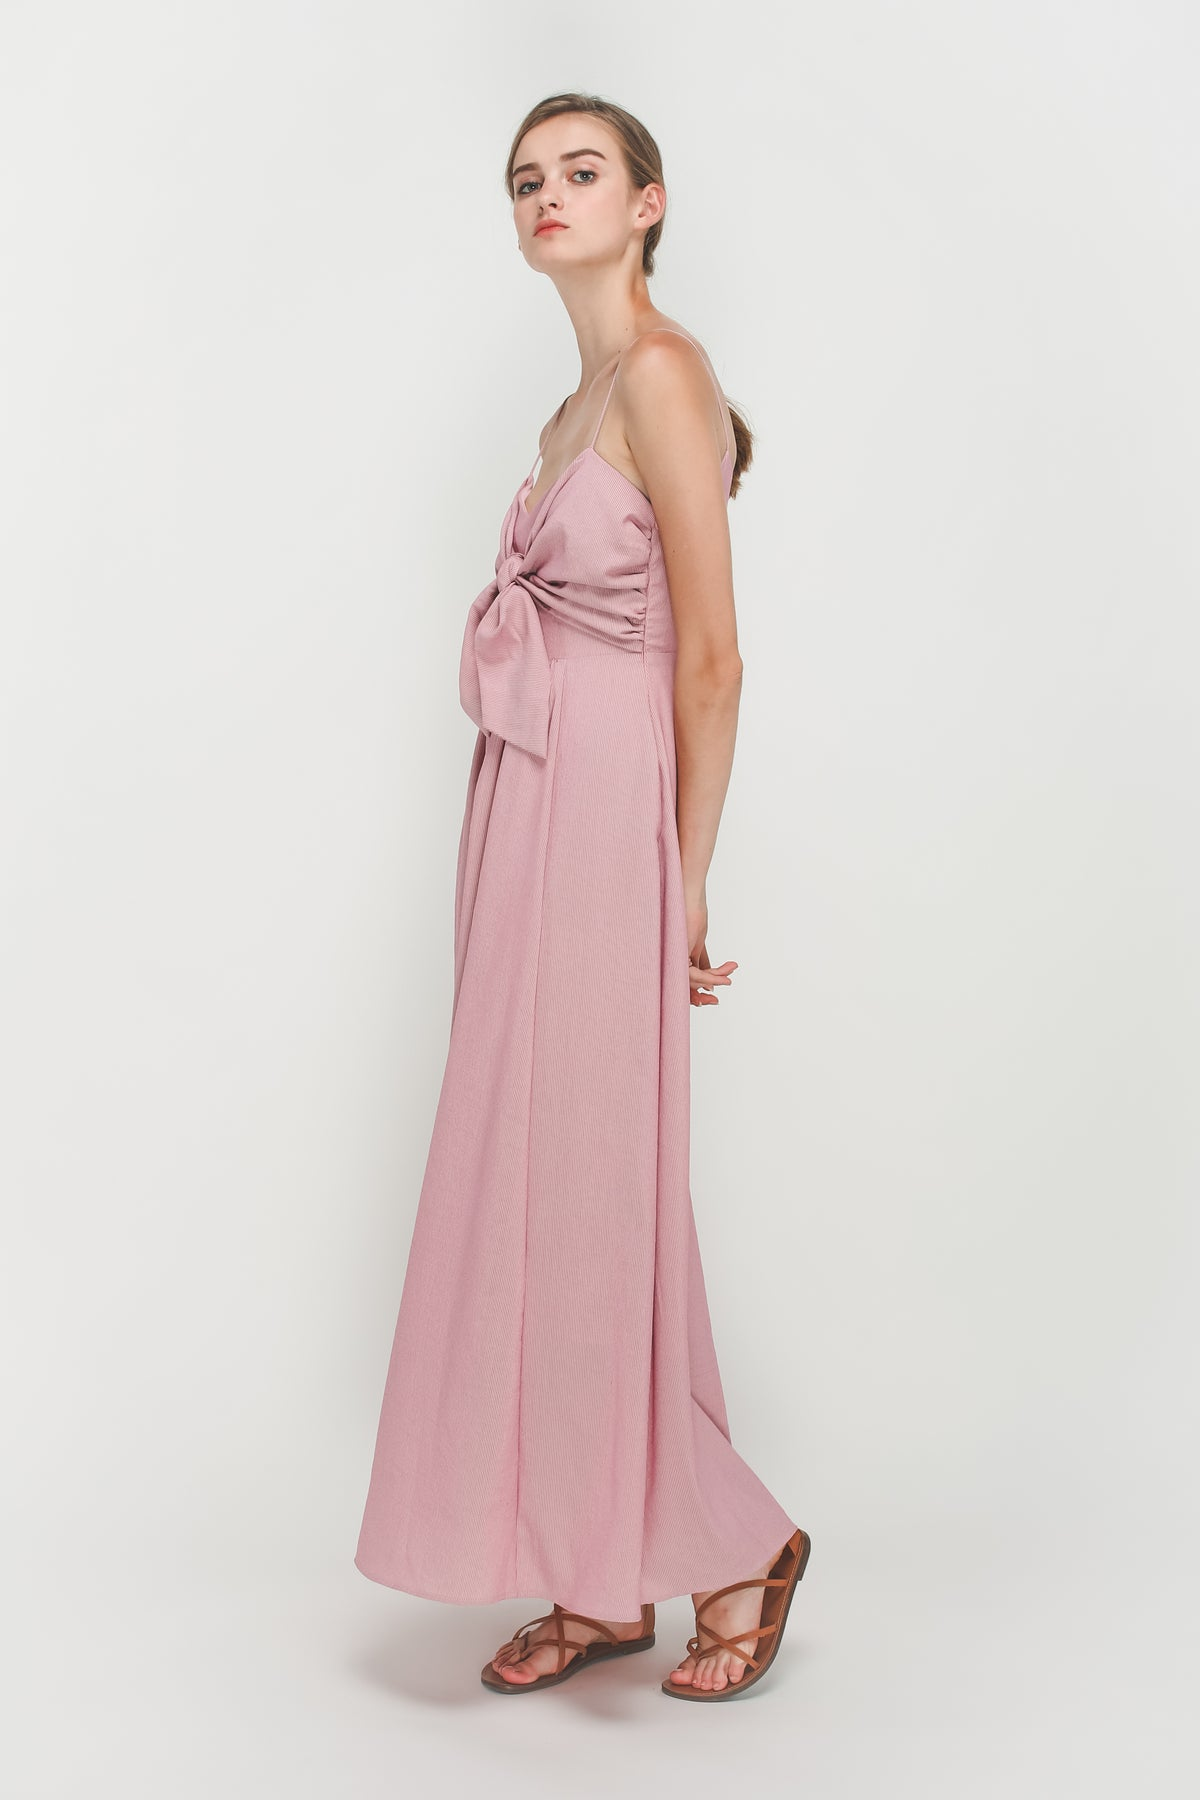 Stripe Knotted Maxi Dress In Pink